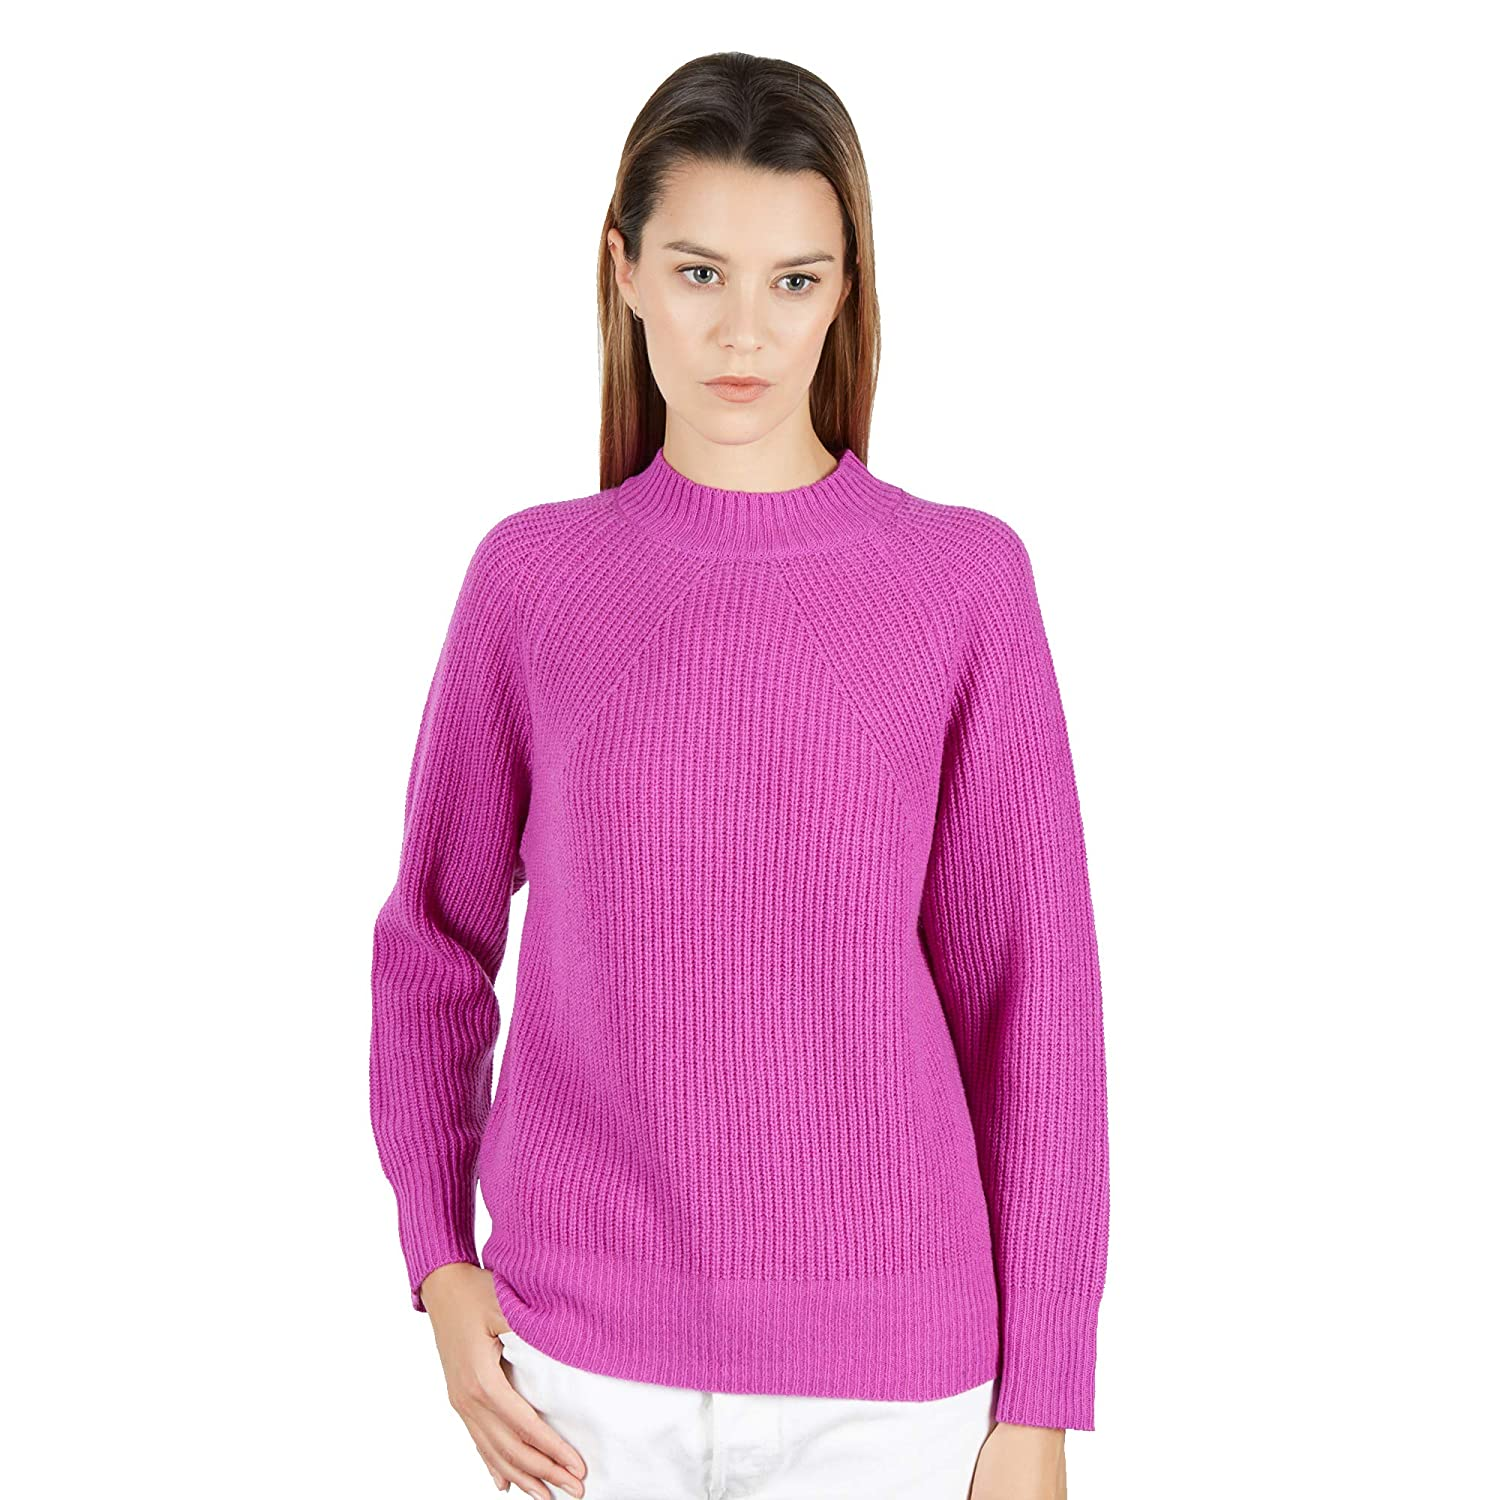 a05982075c9 Pullover Sweater Crew Neck Women in 100% Lambswool Color Lilla    Amazon.co.uk  Clothing